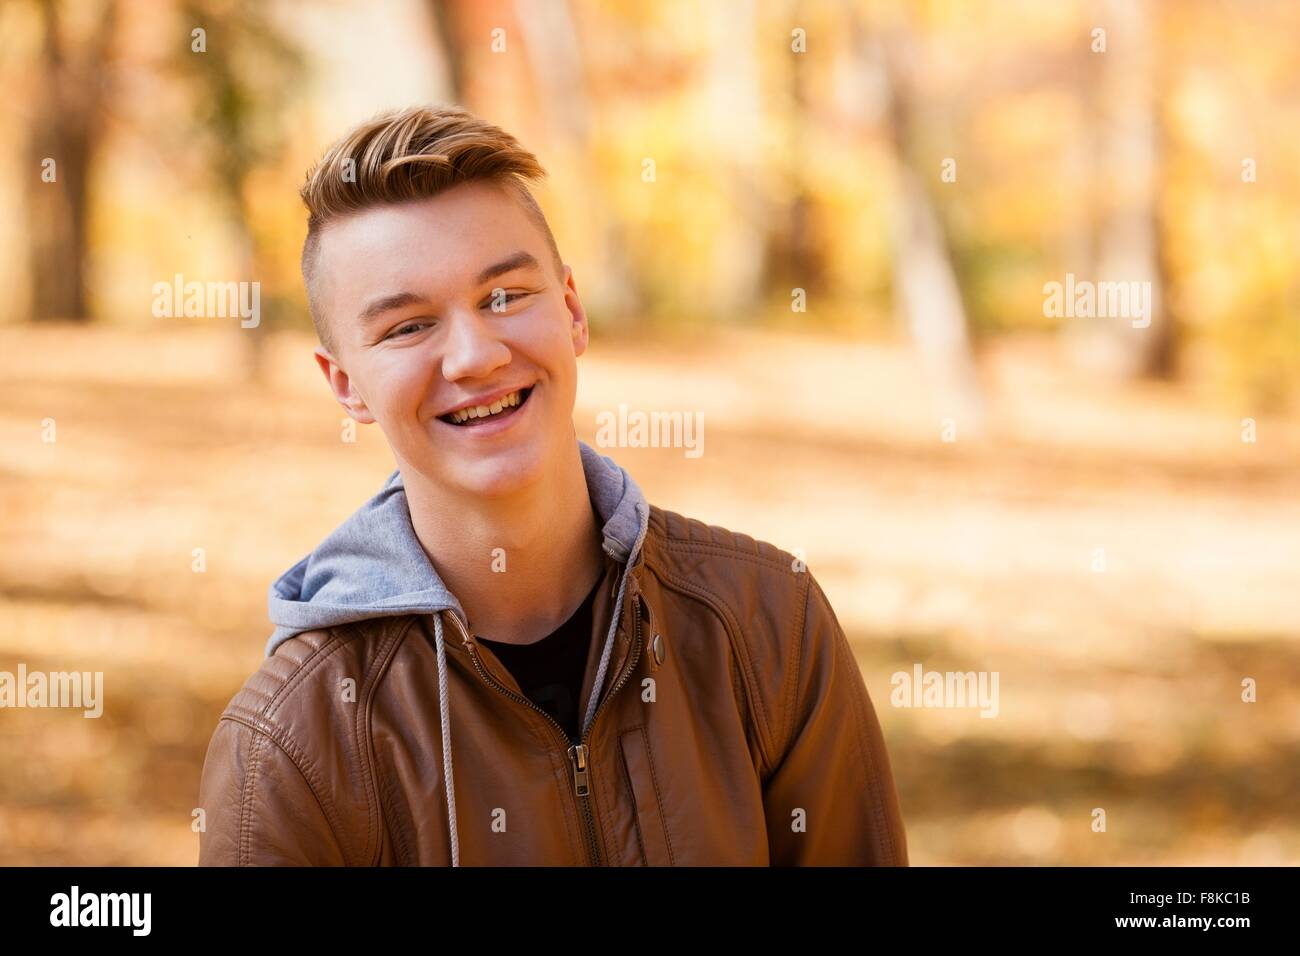 Head and shoulder portrait of teenage boy wearing leather jacket in autumn forest Stock Photo